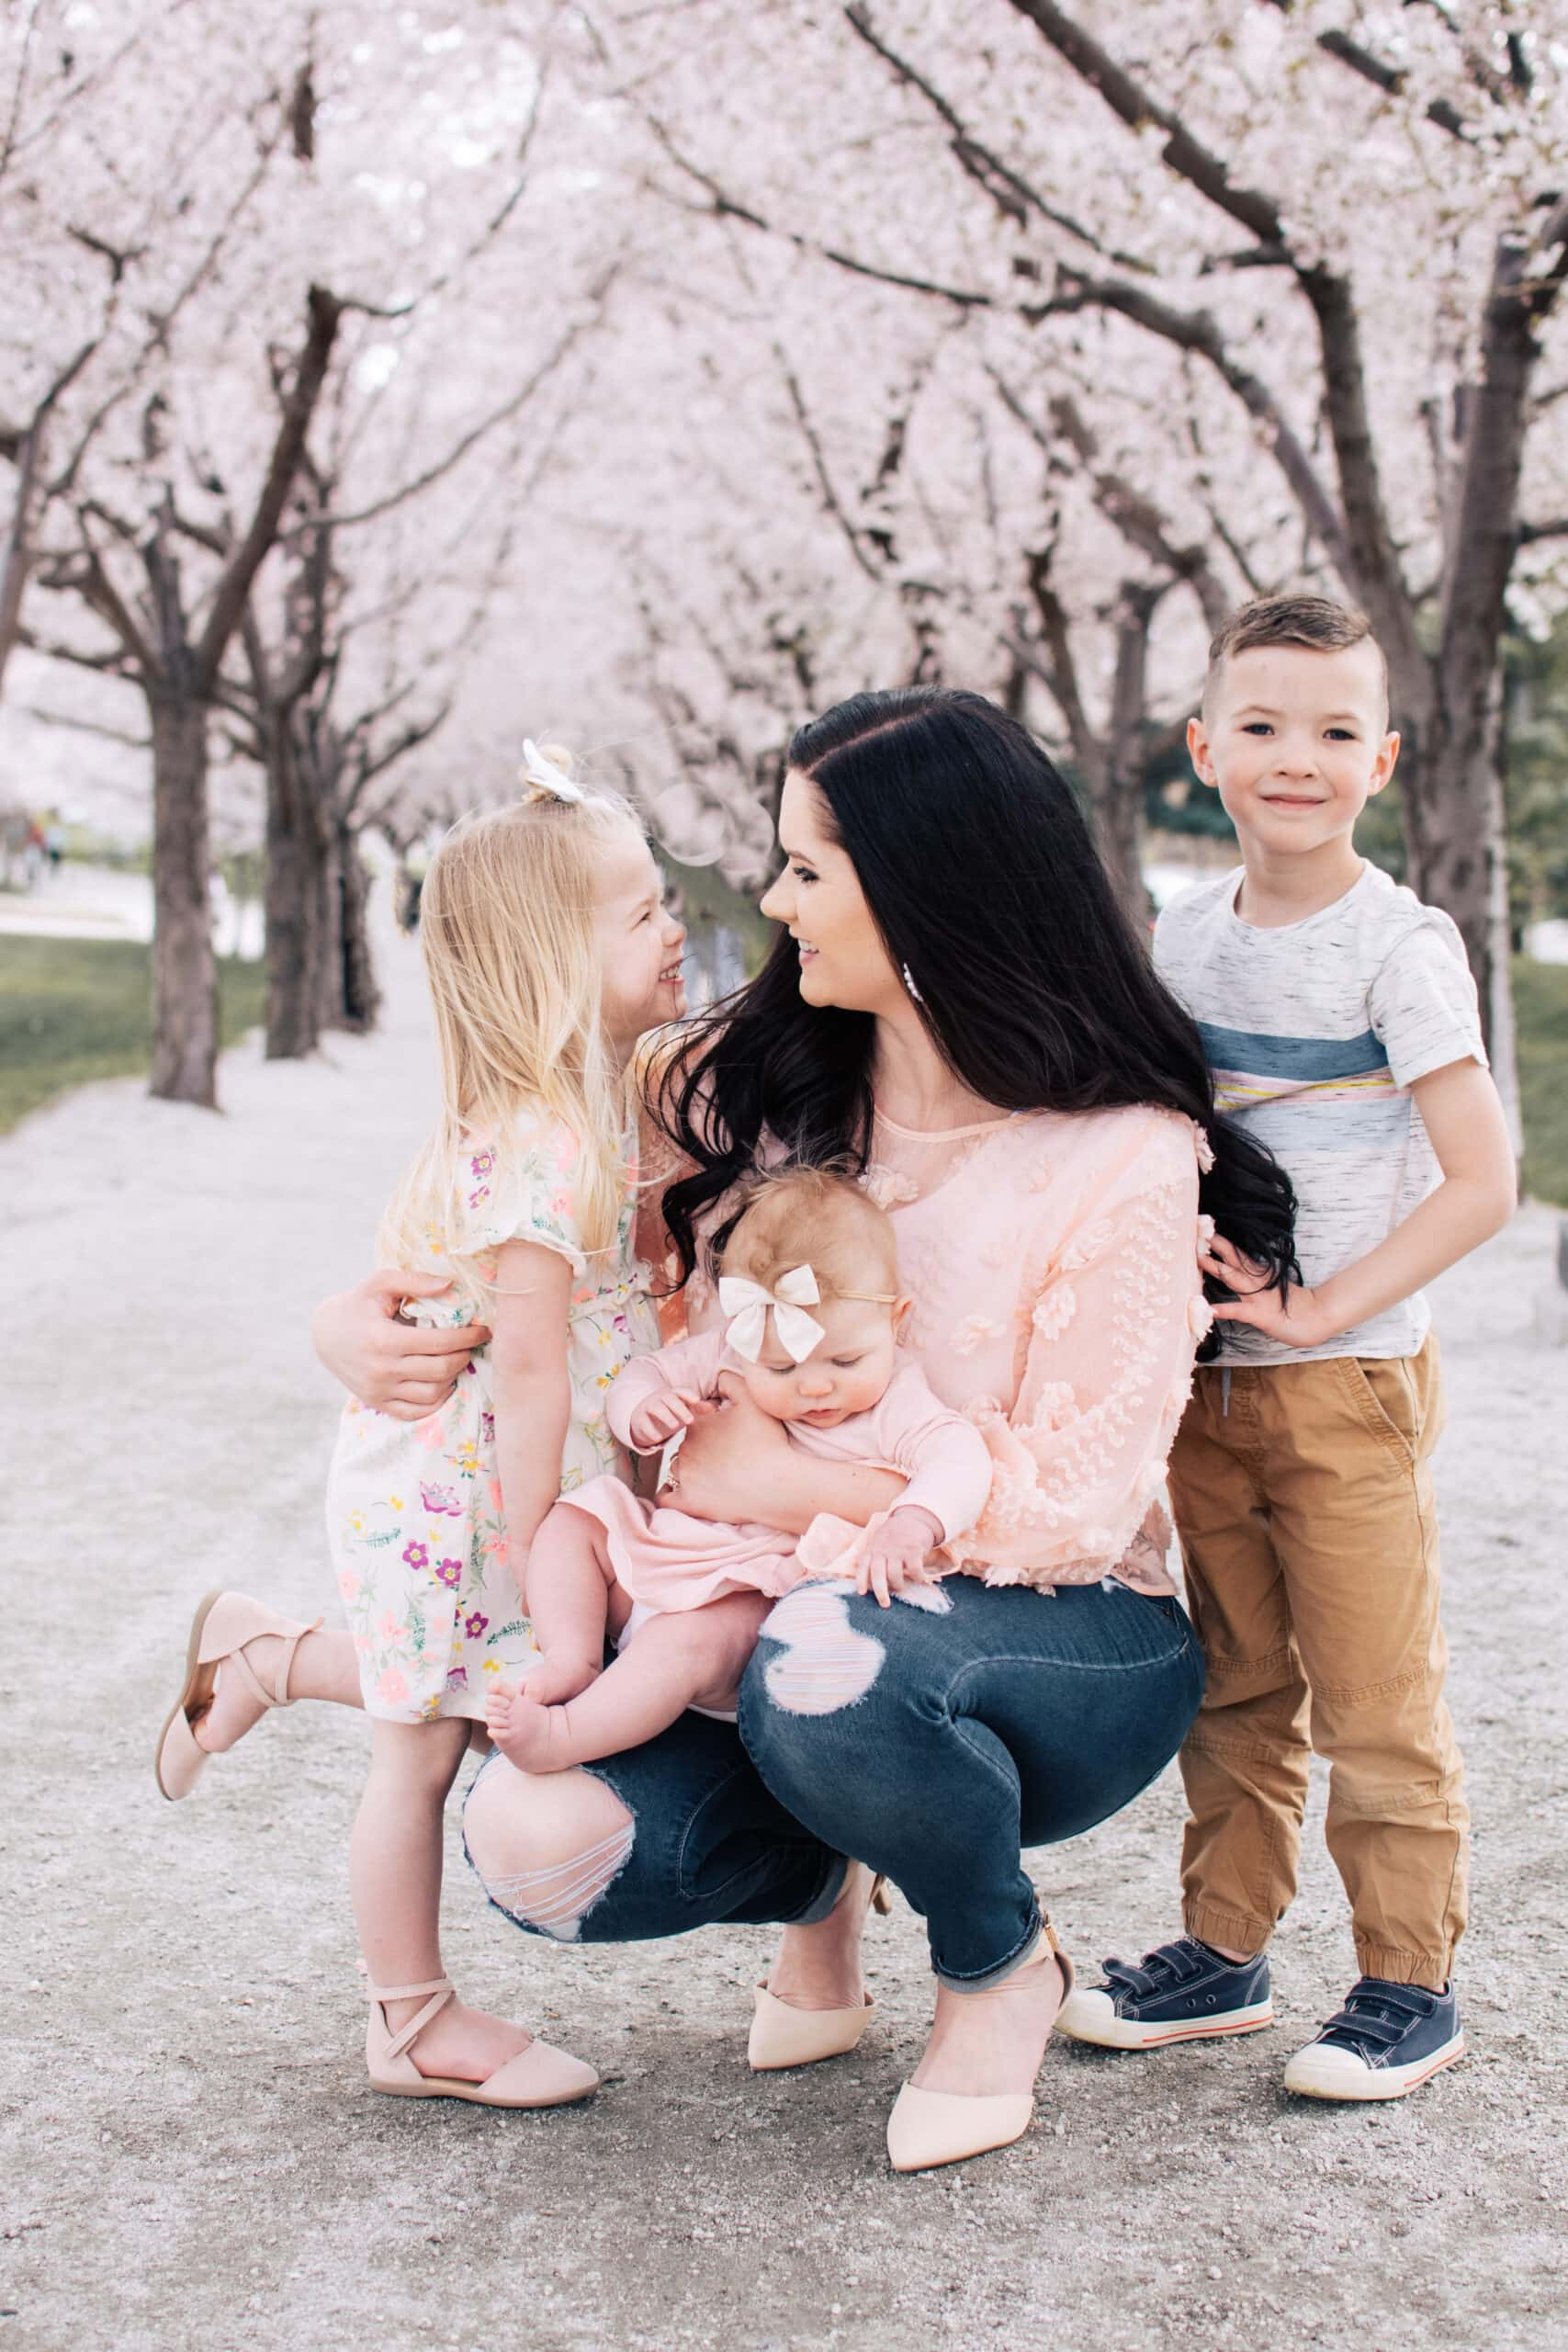 Jessica Ashcroft stands with her three kids by blossoms.